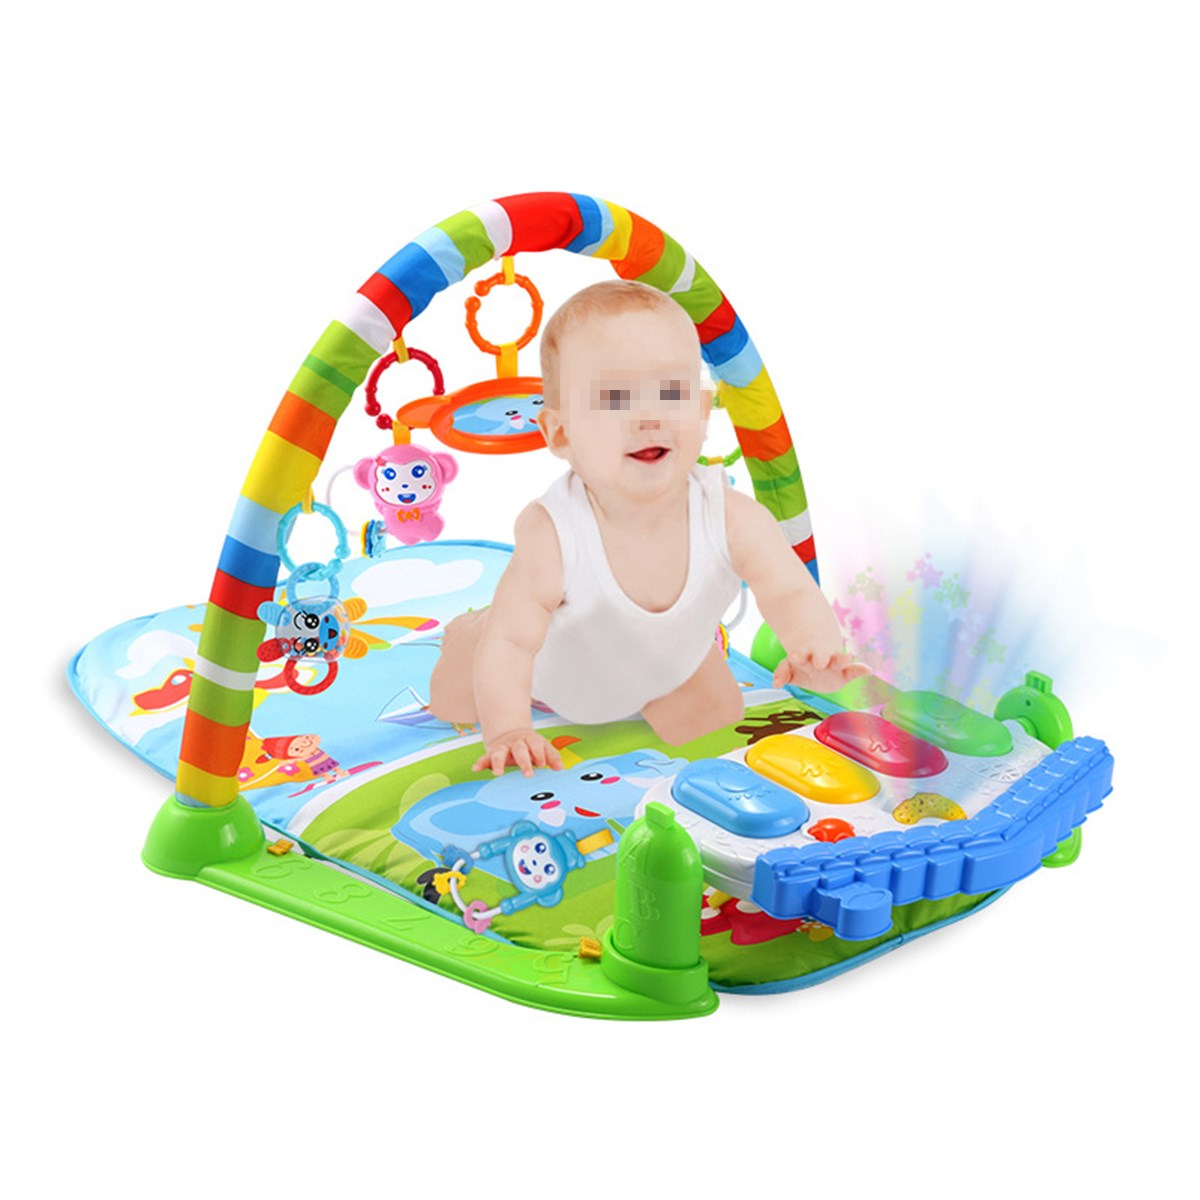 3 In 1 Newborn Infant Baby Game Bed Baby Toddler Cribs Crawling Activity Gym Mat Floor Blanket Kids Toys Carpet Bedding Soft 3 in 1 newborn infant baby game bed baby toddler cribs crawling activity gym mat floor blanket kids toys carpet bedding soft